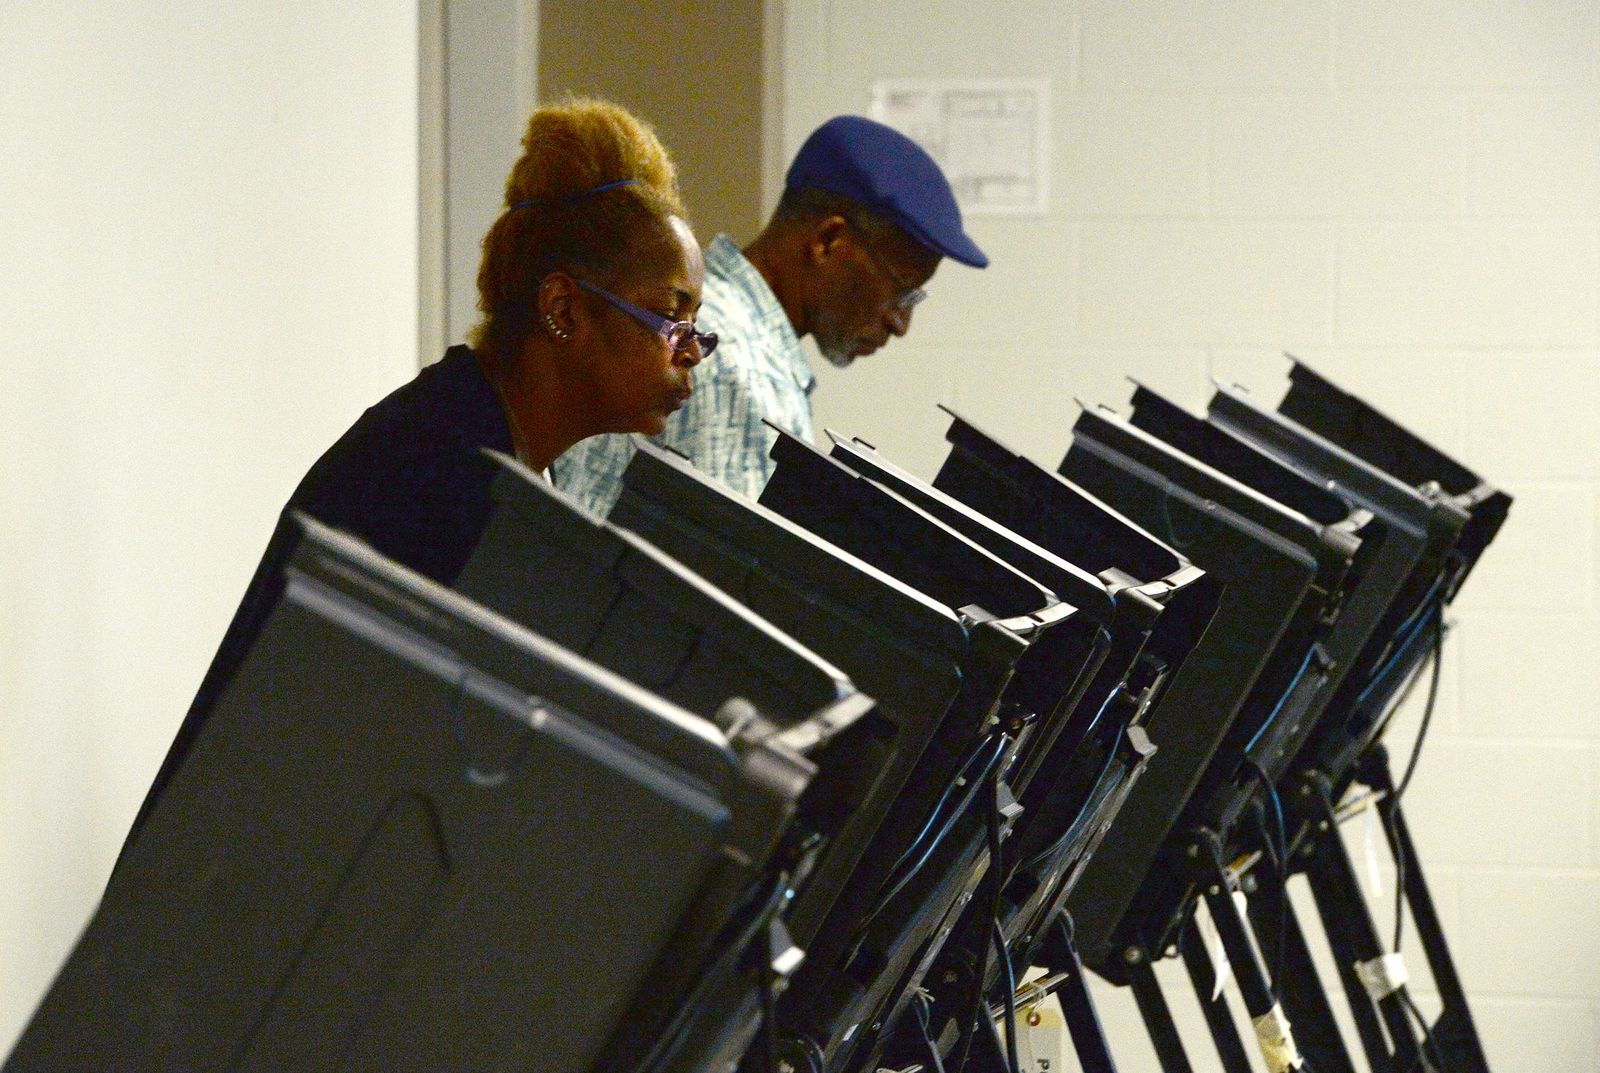 Tanya Archie-Younge, 56 and her husband, Jesse Younge, 62, cast their ballots at Precinct #25 at the West Charlotte Recreation Center Tuesday, September 10, 2019.{ } (John D. Simmons/The Charlotte Observer via AP)